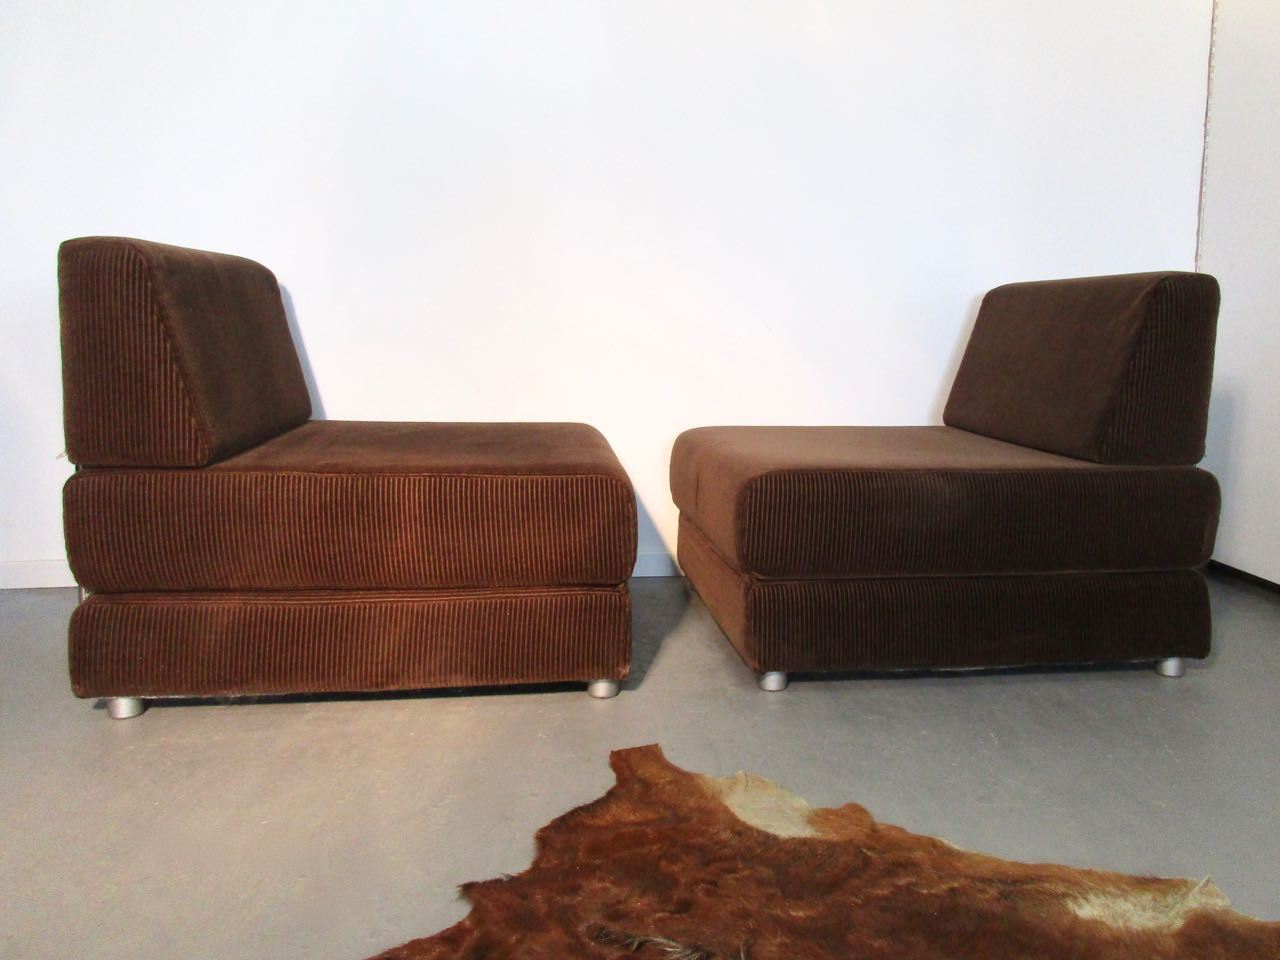 Sold seventies cordsessel schlafsofa retro salon cologne for Schlafsofa 70er